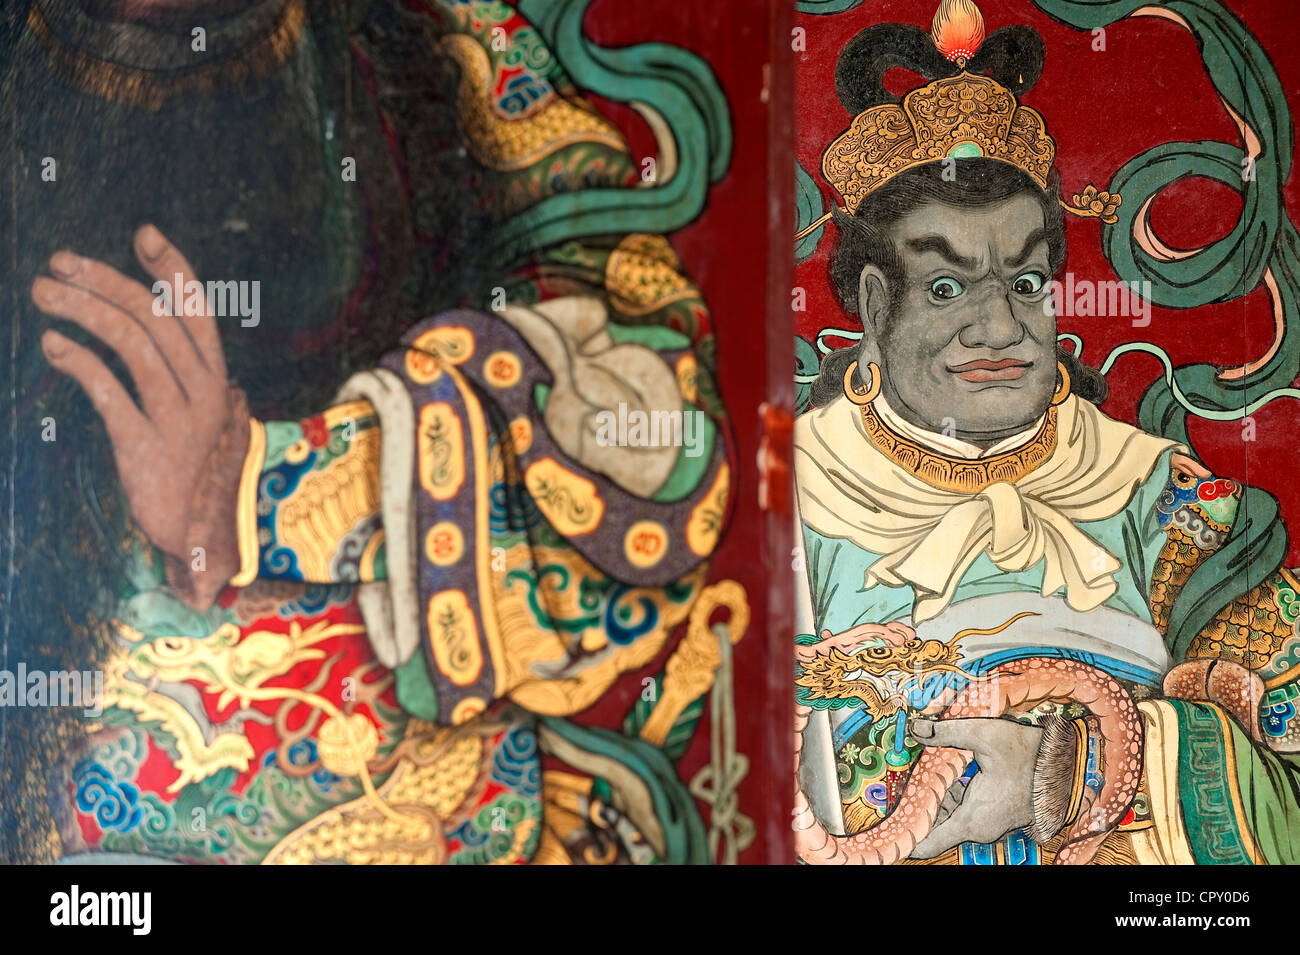 Taiwan, Tainan District, Tainan, Fahua Temple, detail of the door - Stock Image